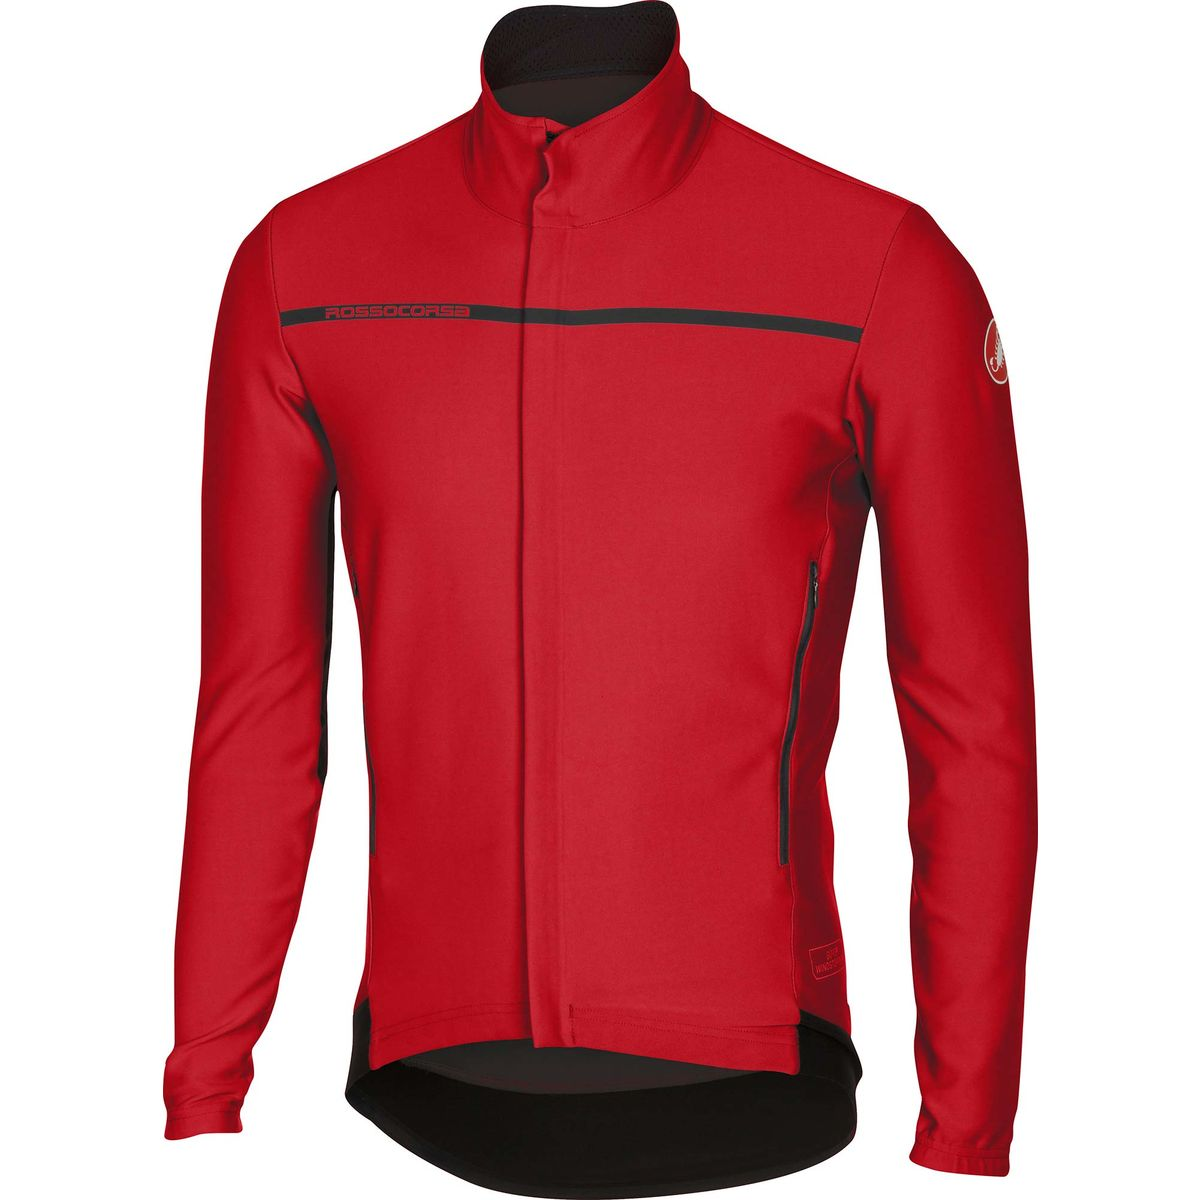 PERFETTO GORE WINDSTOPPER soft shell jacket